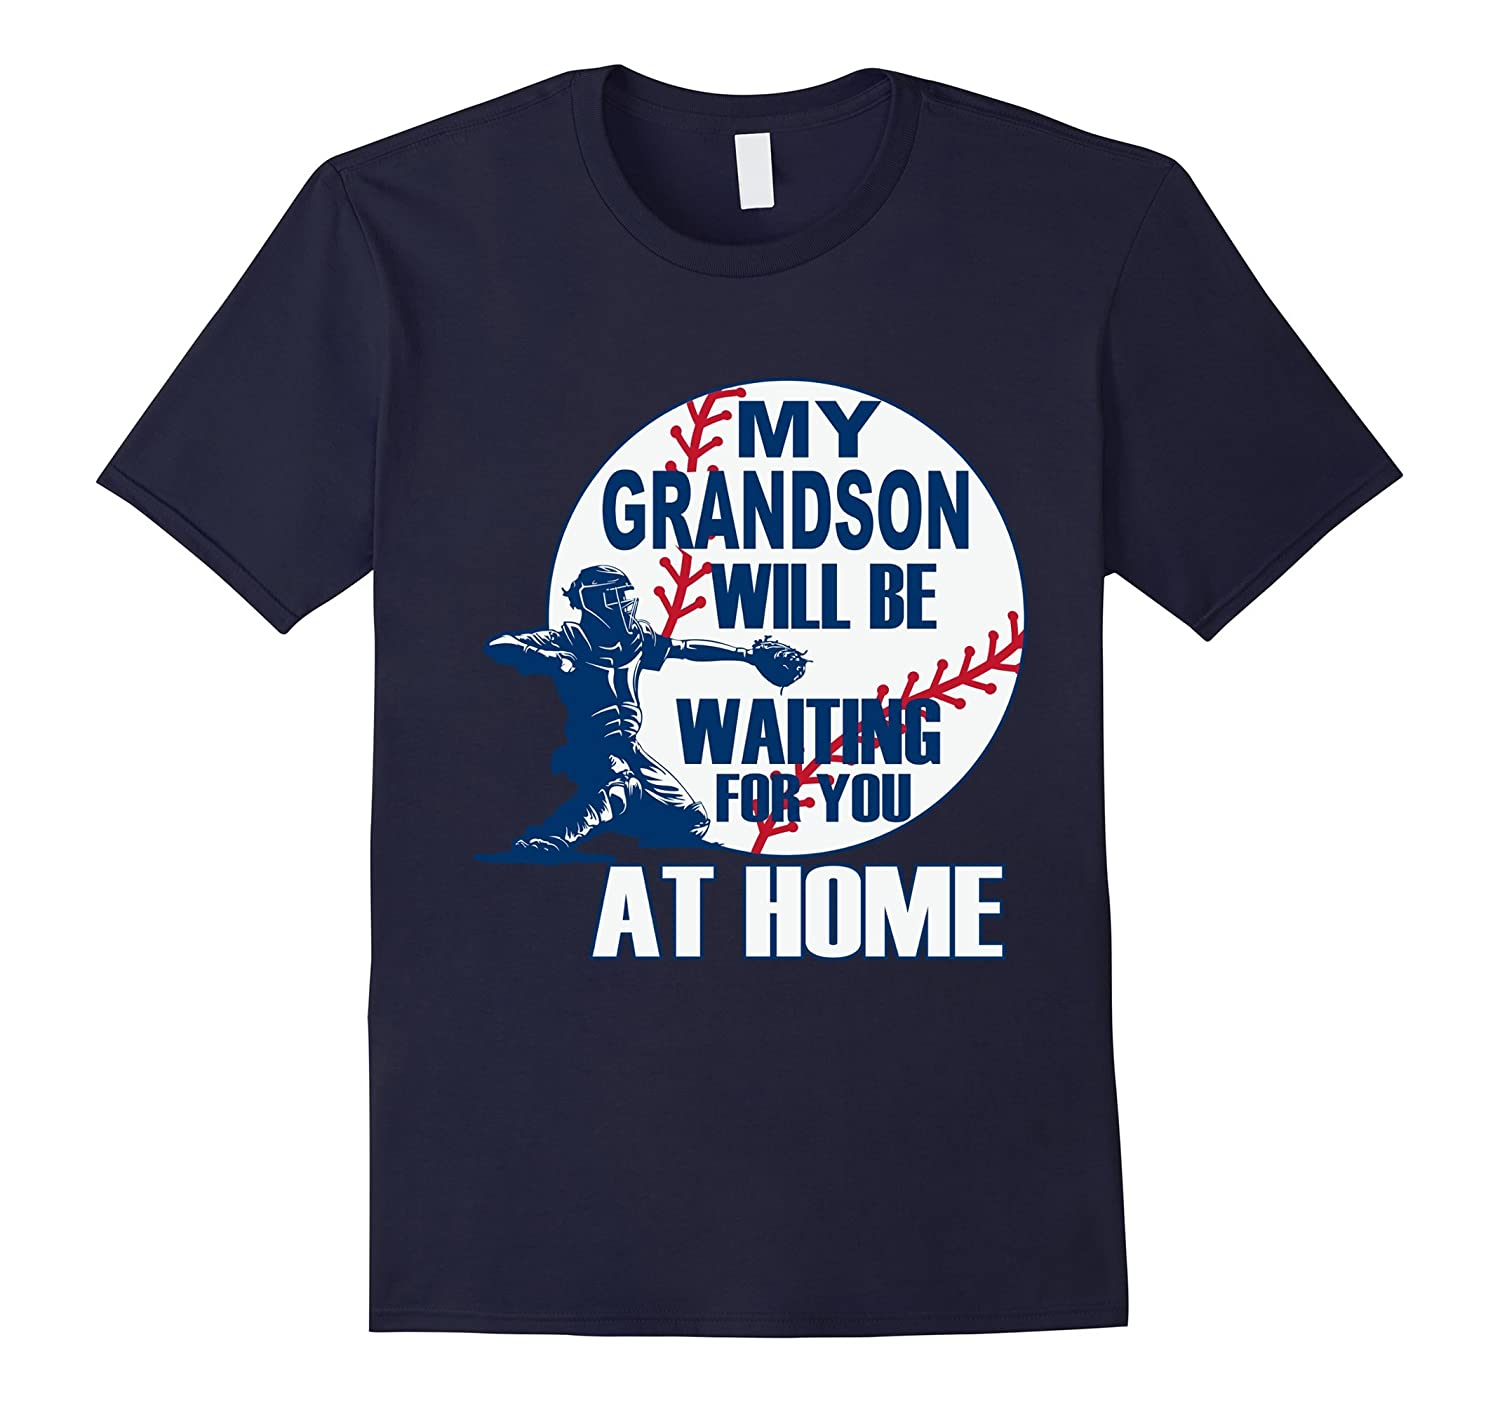 BASEBALL MAMA PAPA MY GRANDSON IS A CATCHER T SHIRT-TH